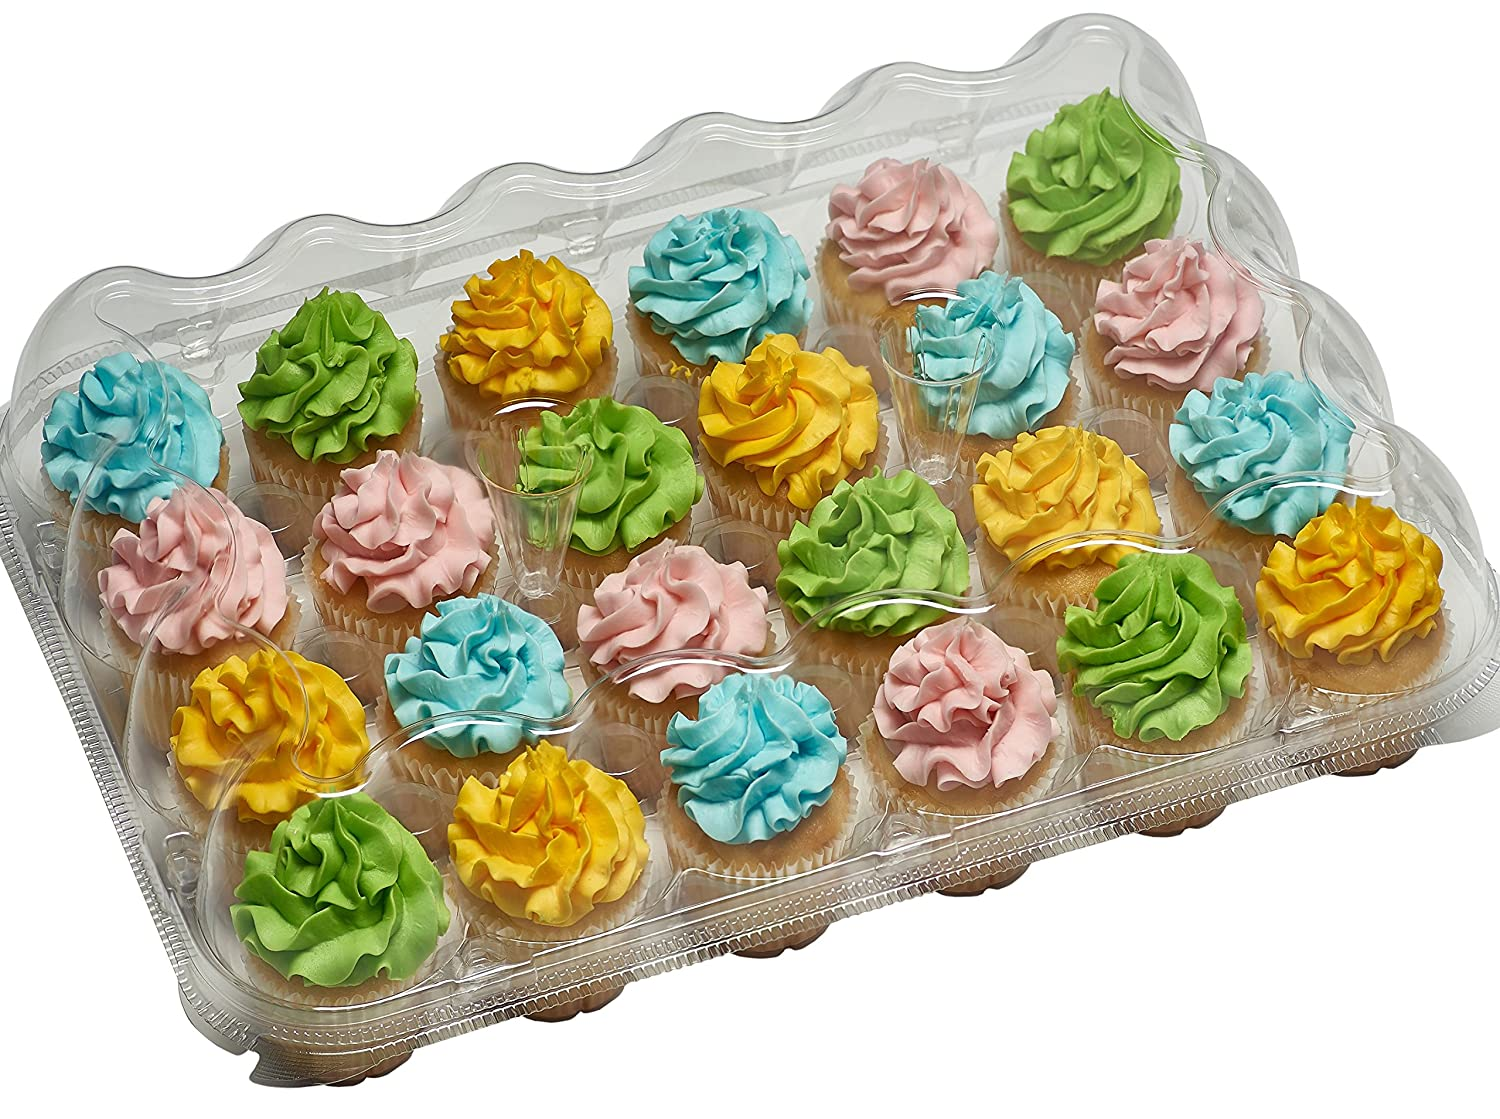 5-24 Compartment Clear High Dome Cupcake Containers Boxes with baking cup liners - Great for high topping - 5 boxes 24 slot each - Plus White standard size baking cups COMIN18JU055667